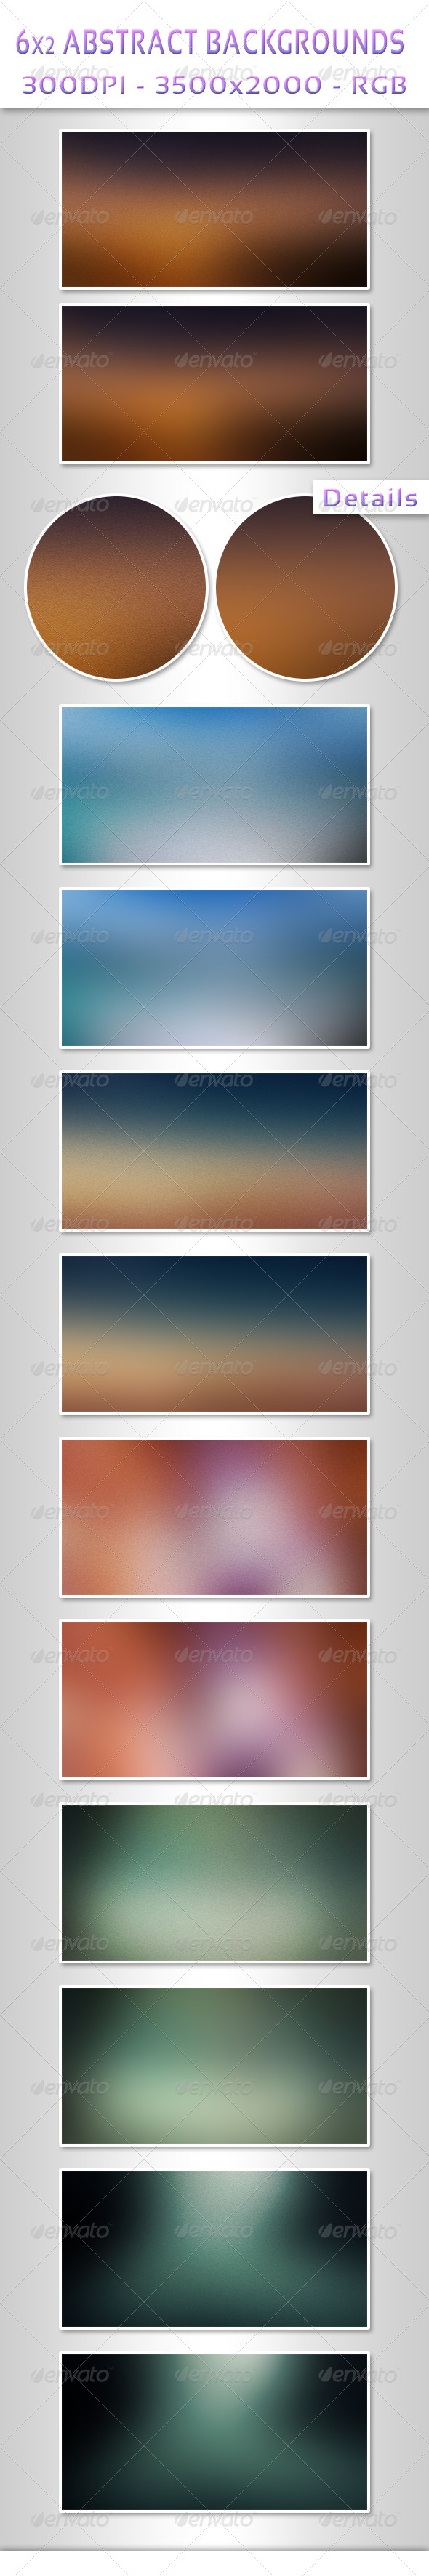 12 Abstract Backgrounds 2